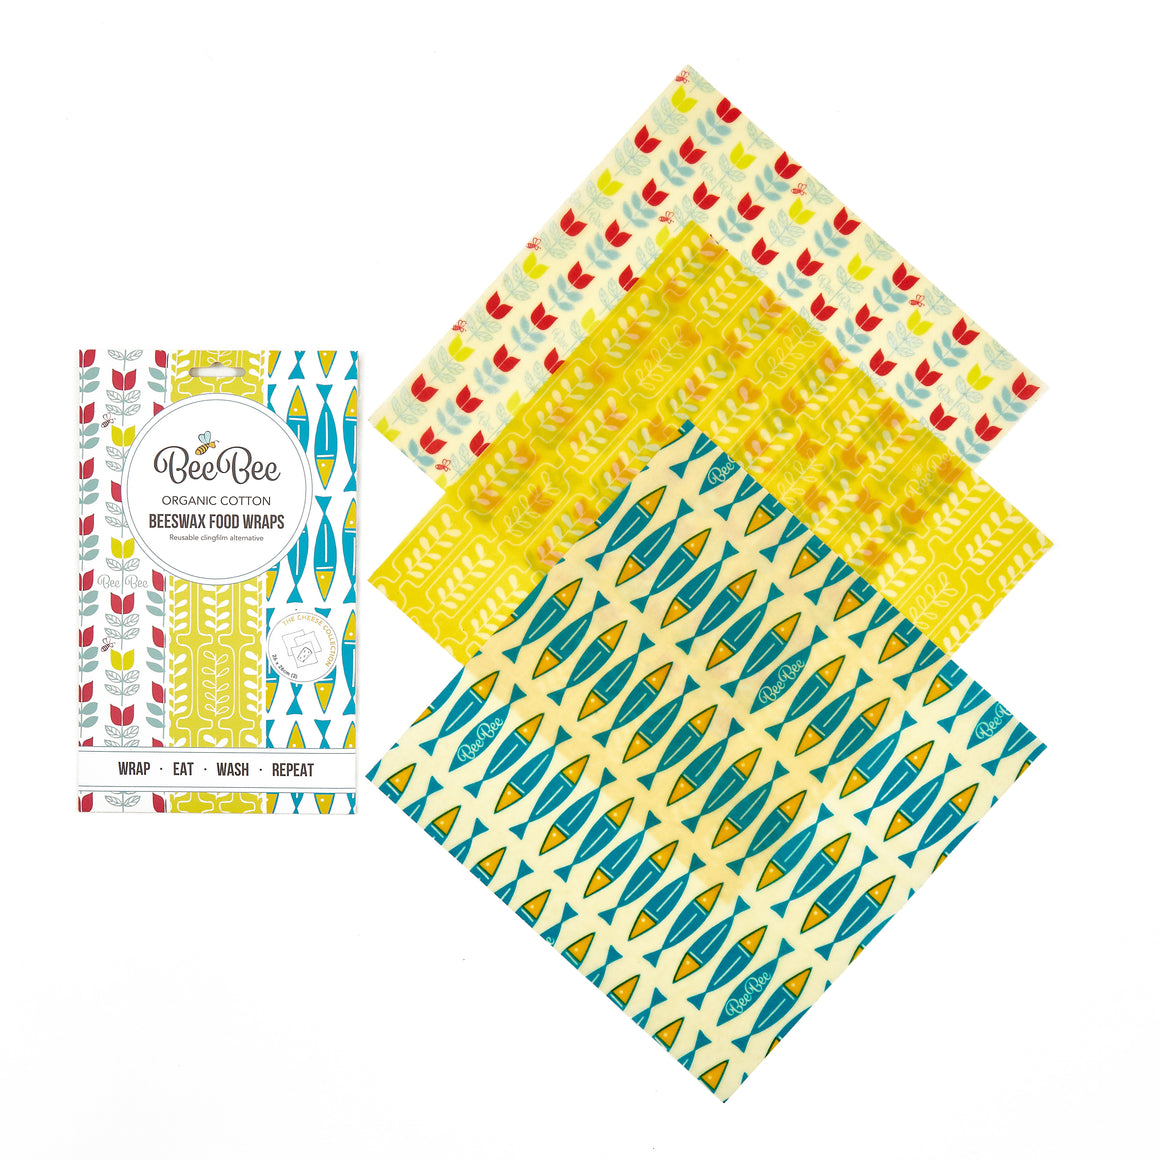 BeeBee Organic Cotton Beeswax Wraps - The Cheese Collection (3 x medium size wraps)